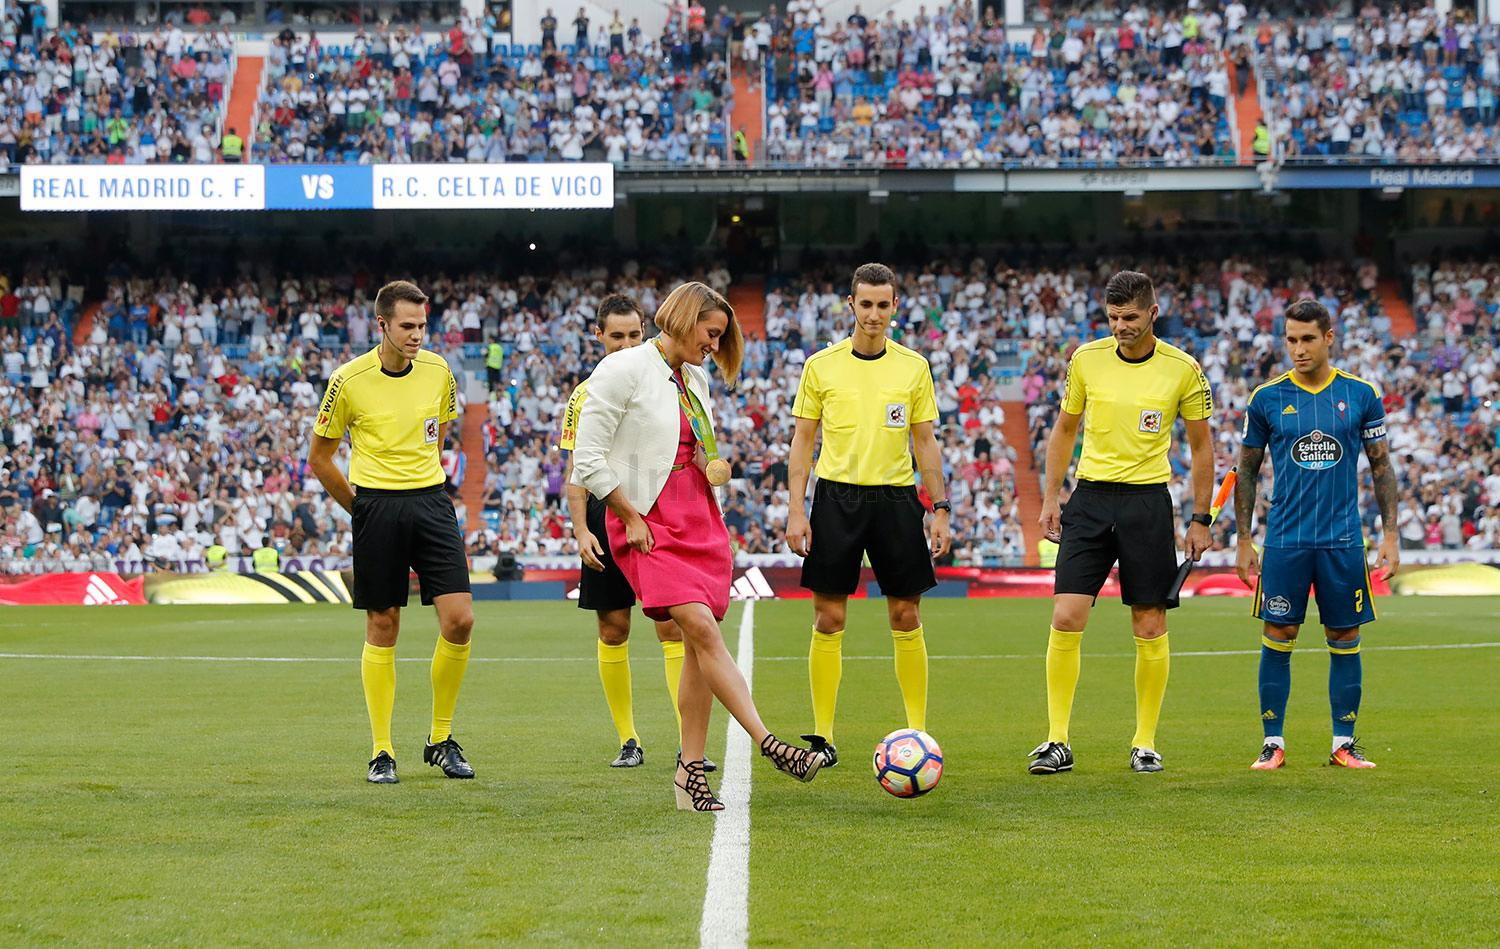 Real Madrid - Real Madrid - Celta - 27-08-2016